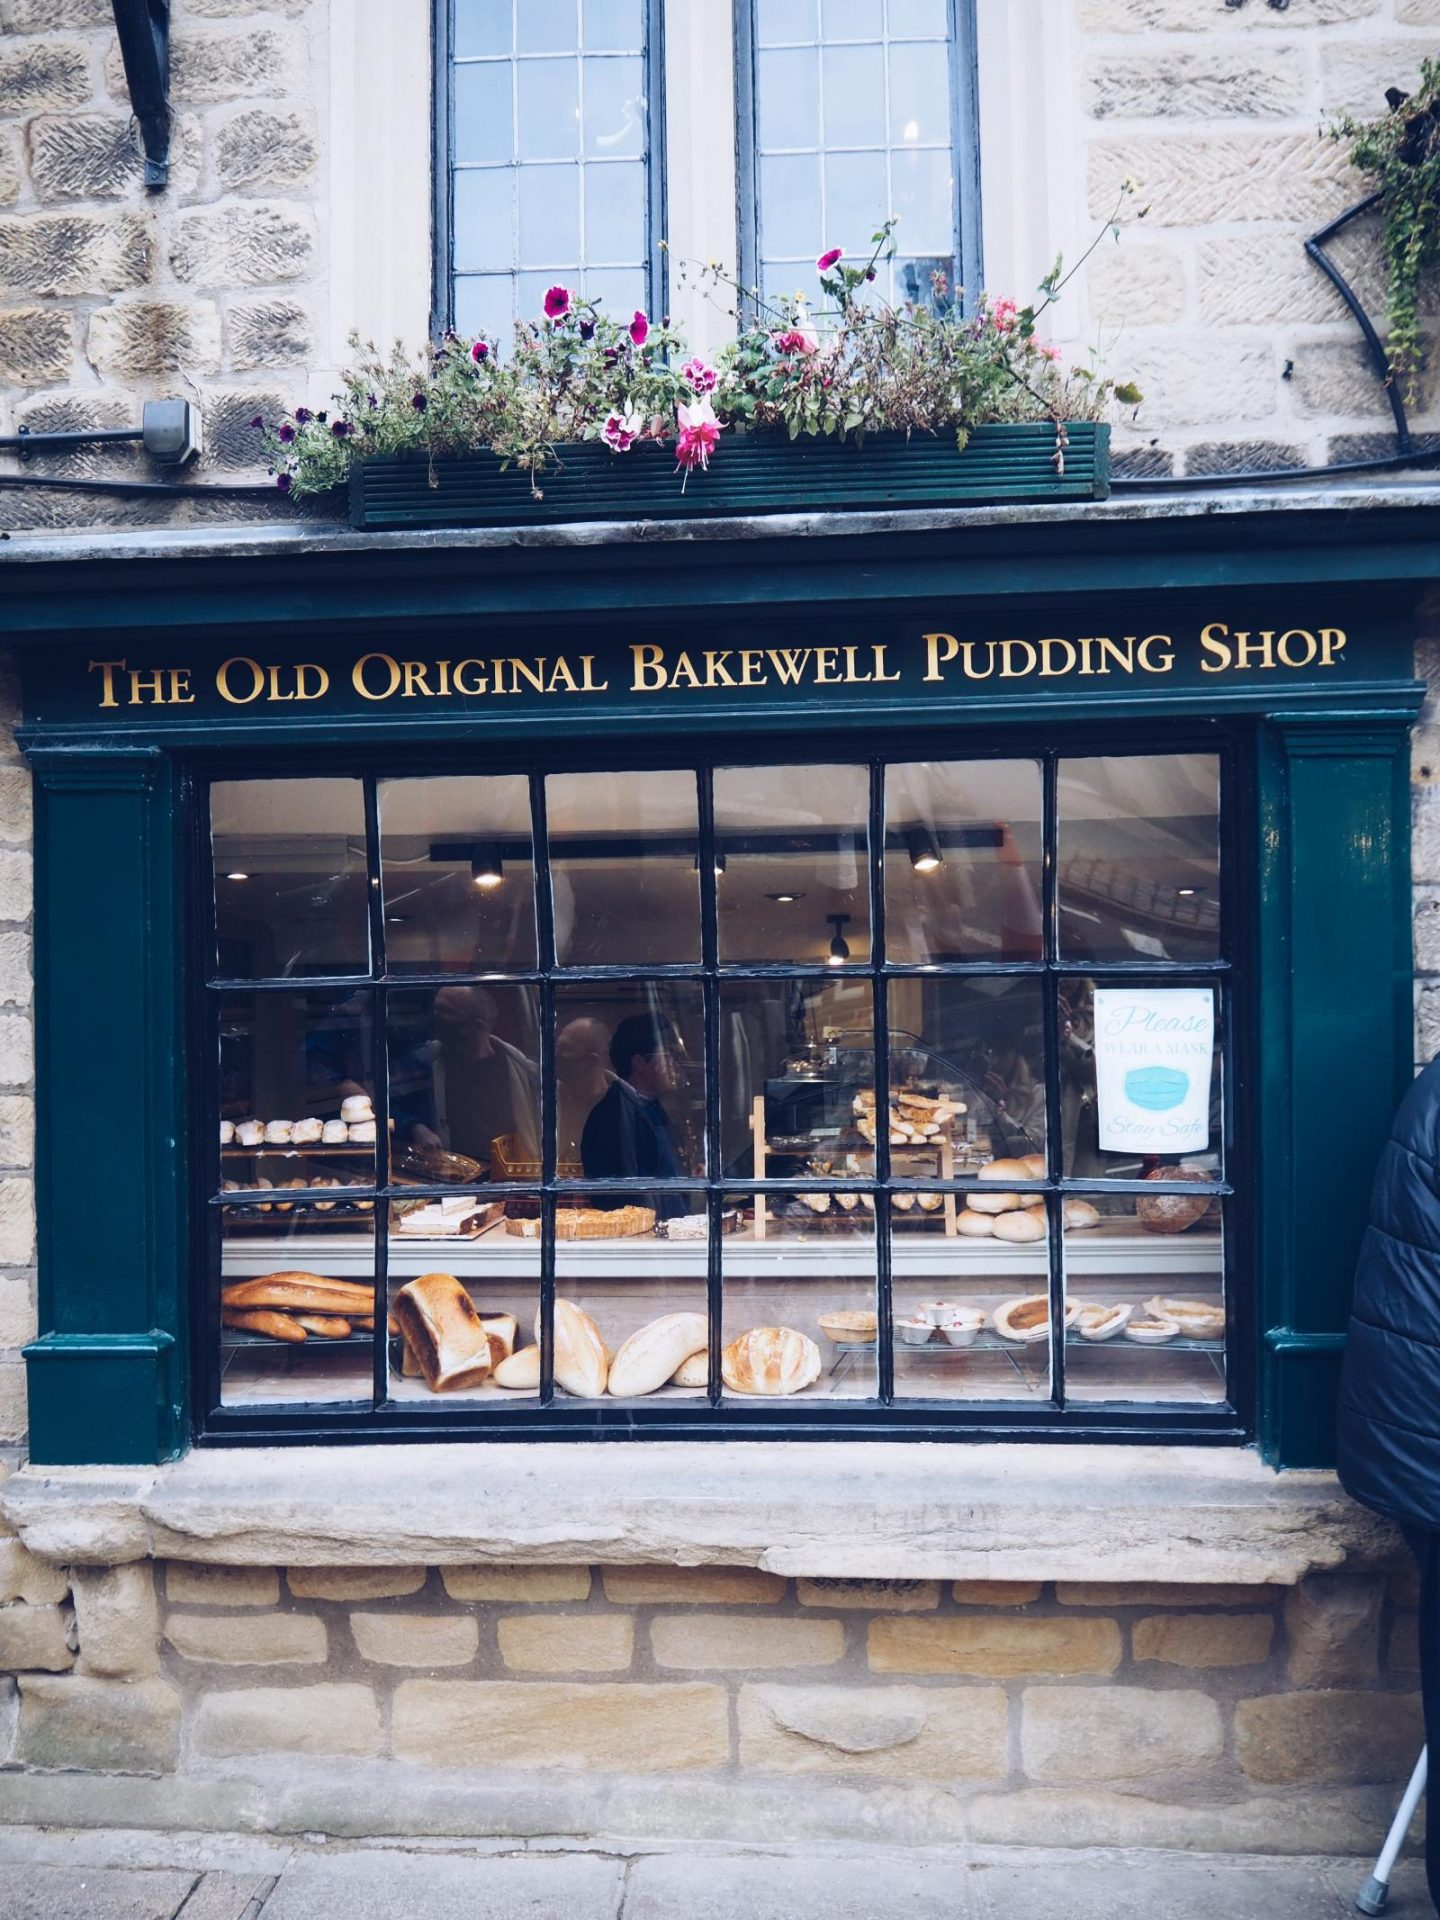 The Old Original Bakewell Pudding Shop